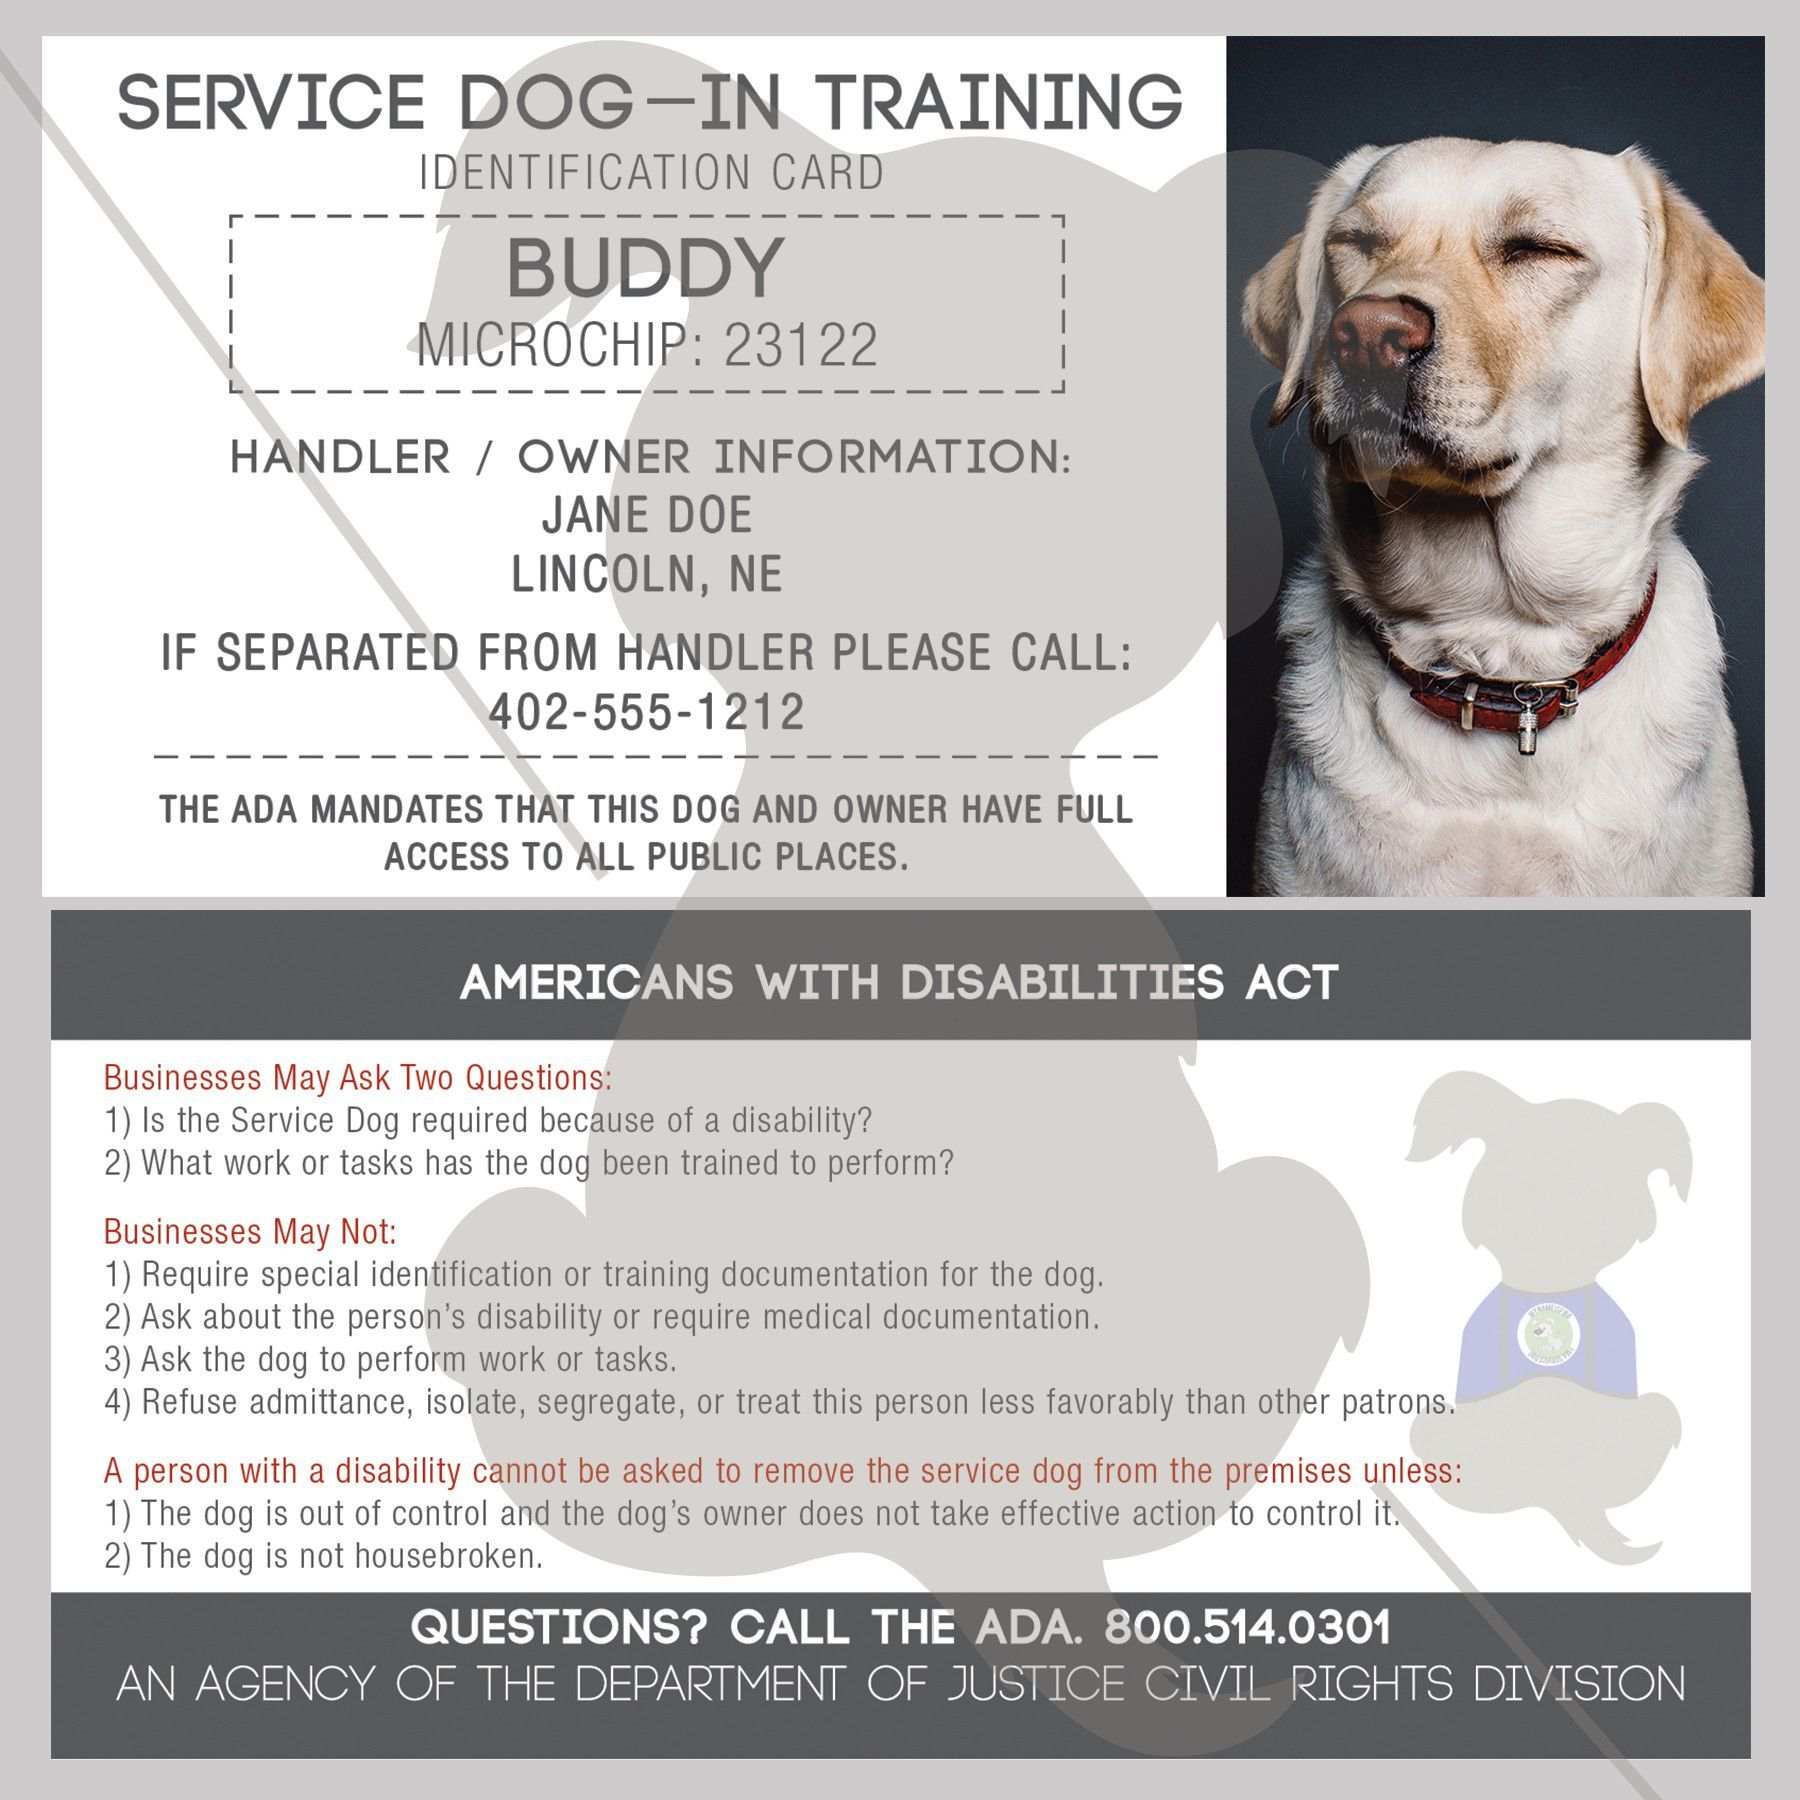 Id Card Service Dog In Training Service Dogs Dog Training